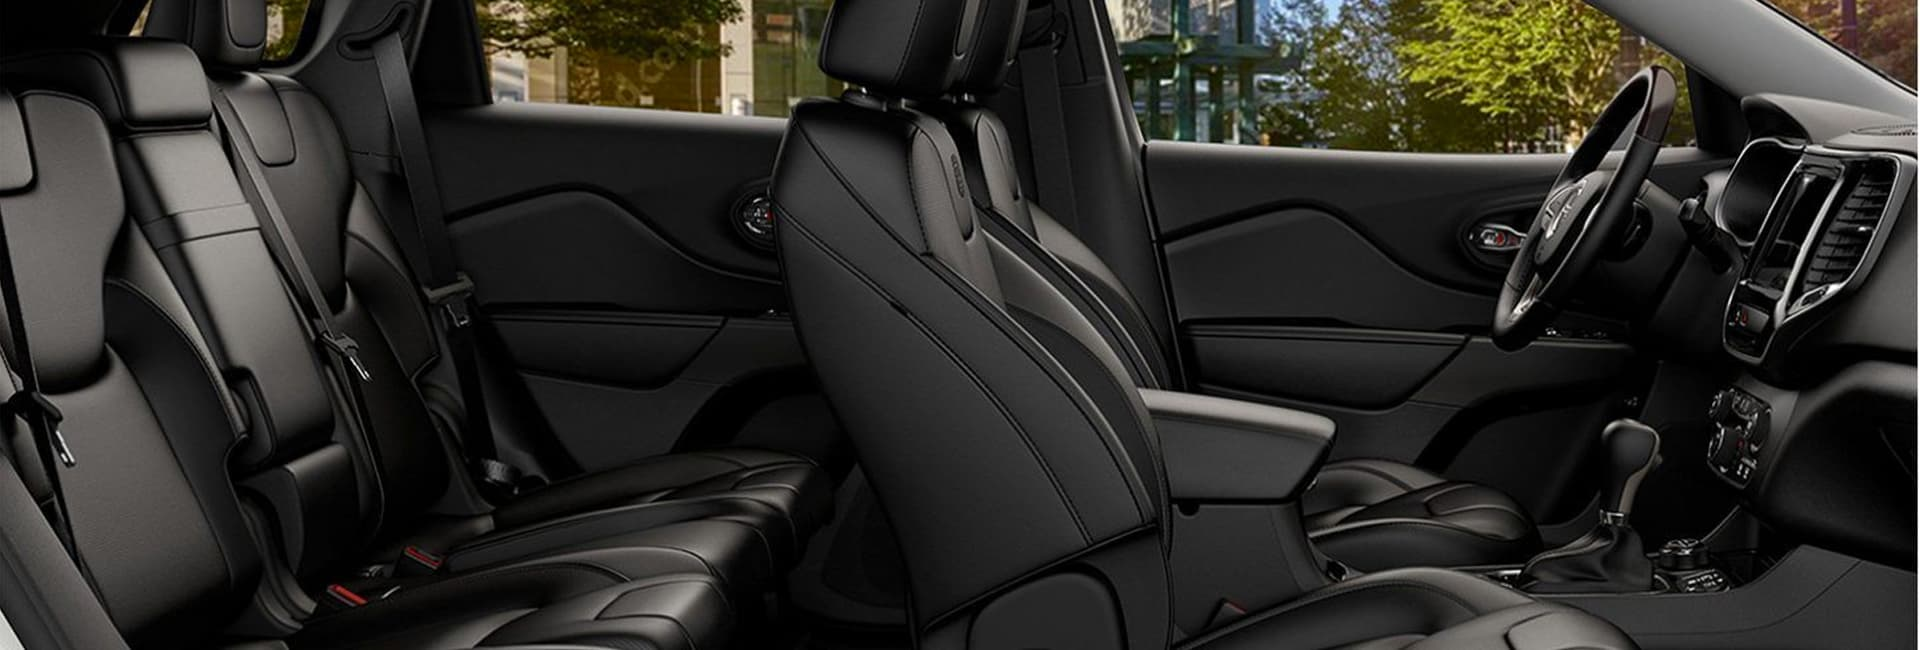 Interior image of the 2020 Jeep Cherokee for sale.